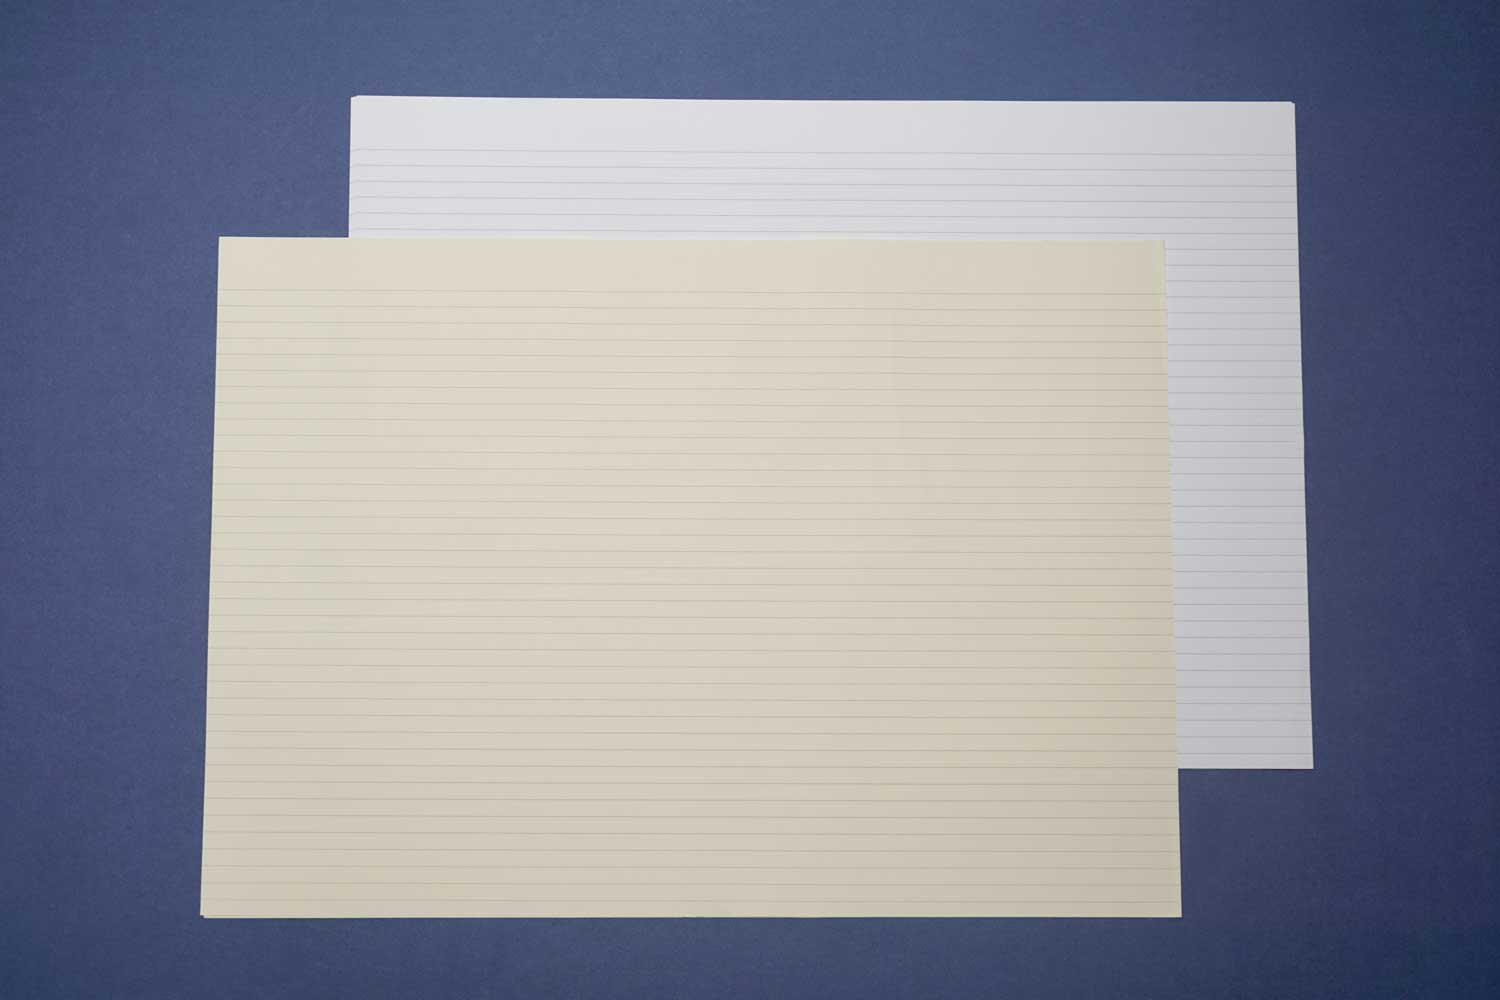 Horizontal Lined Paper for Bookbinding